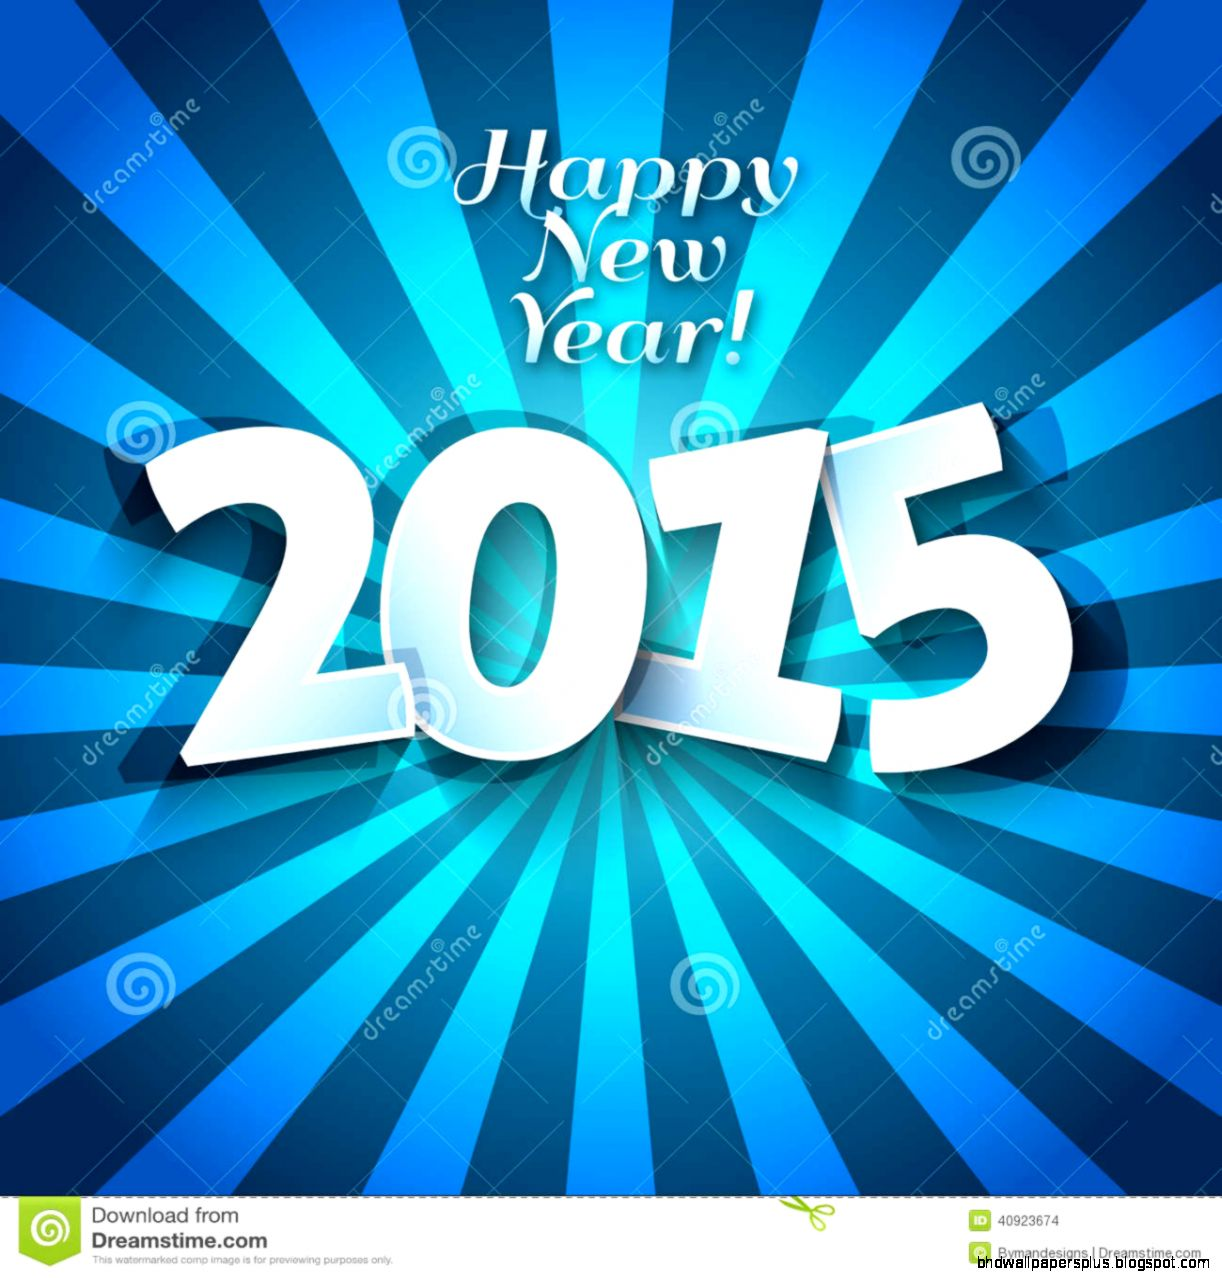 Happy New Year Email Sample Hd Wallpapers Plus